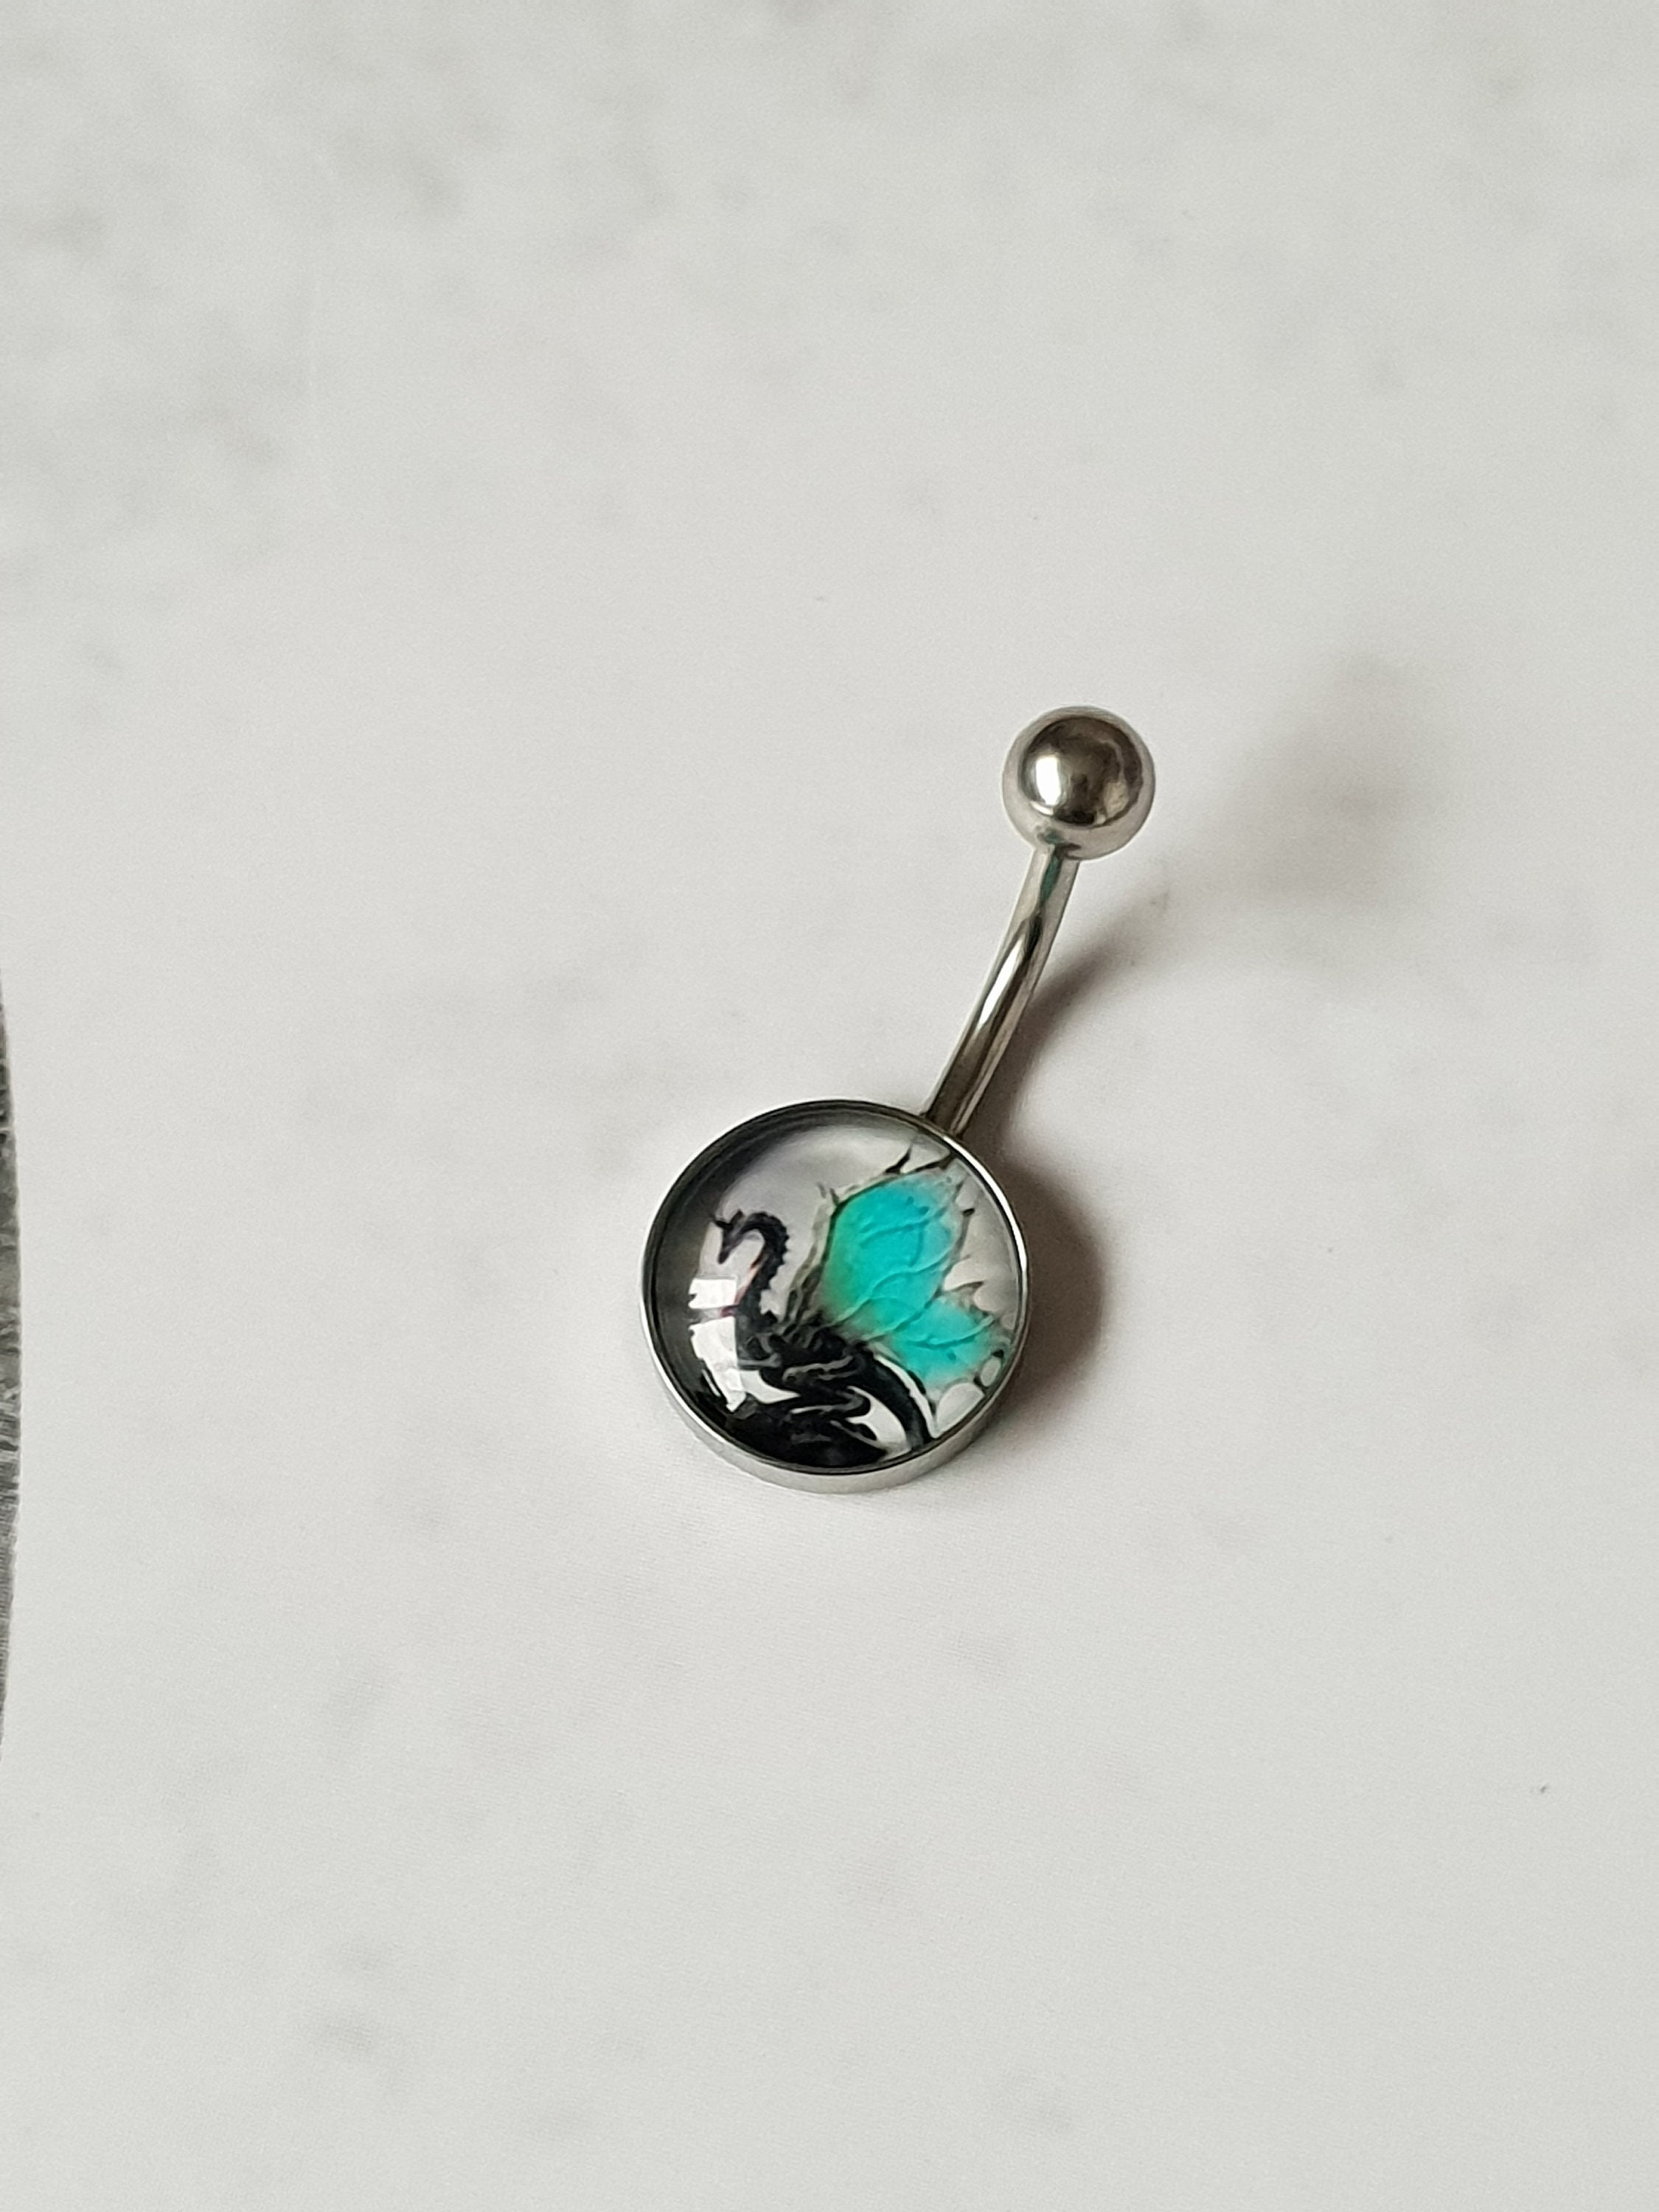 Surgical Steel Bar Dangle Belly Bar Zip in Display Packet